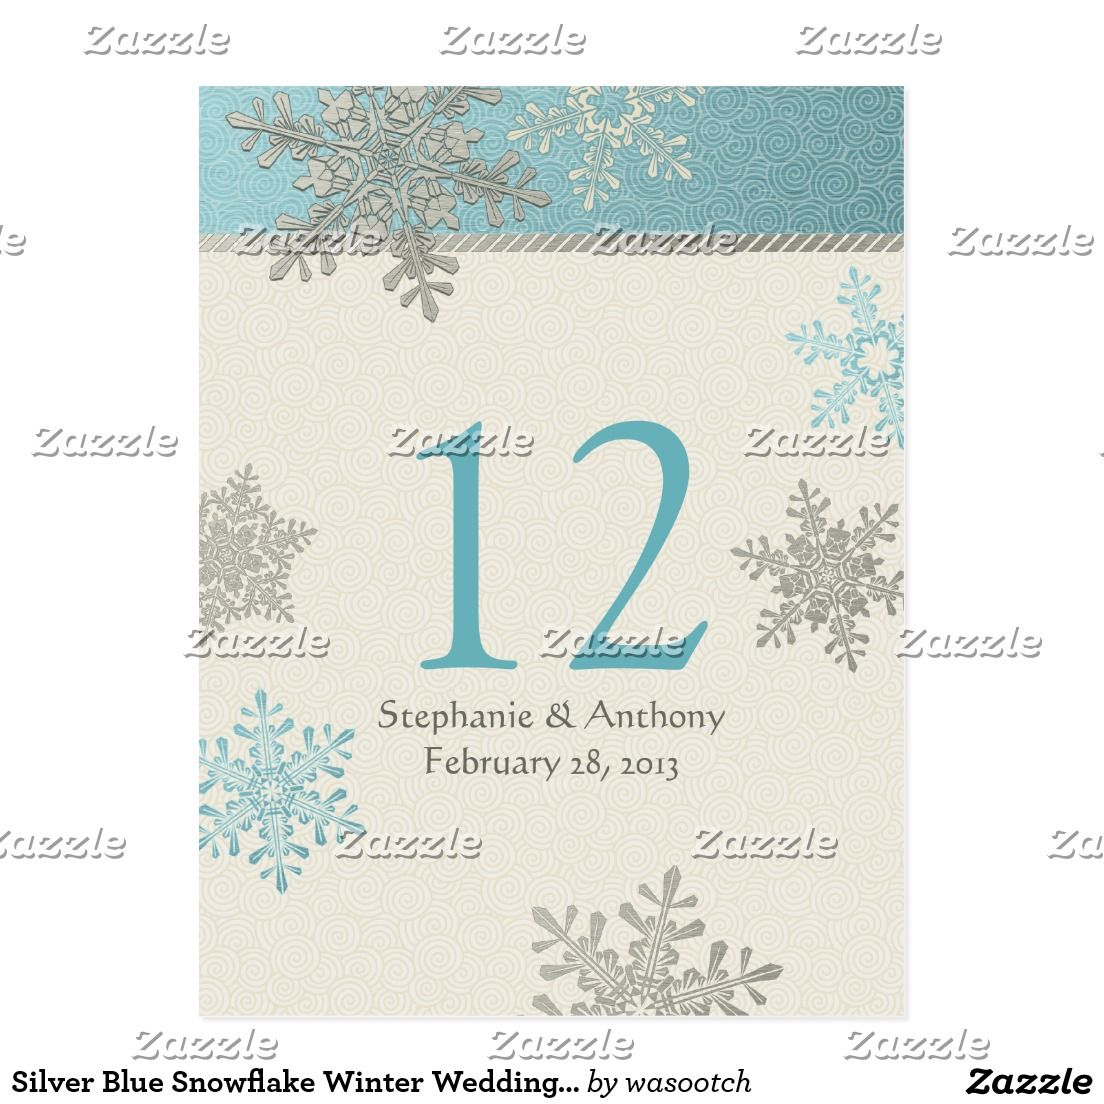 Silver Blue Snowflake Winter Wedding Table Card